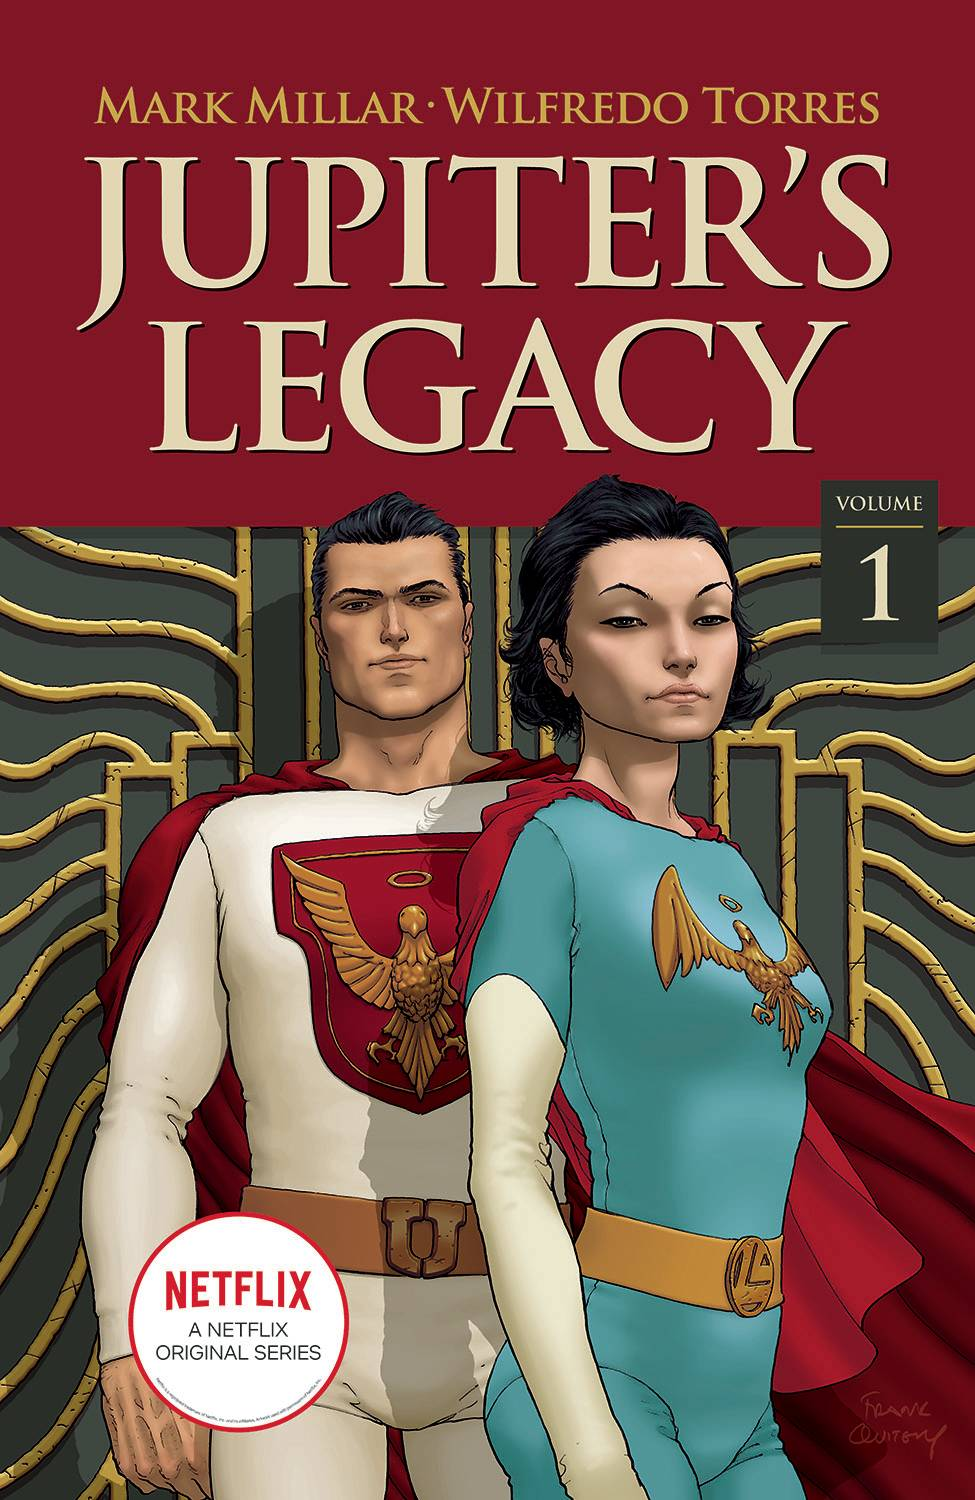 JUPITERS LEGACY TP VOL 01 NETFLIX ED (JUL200104) (MR)